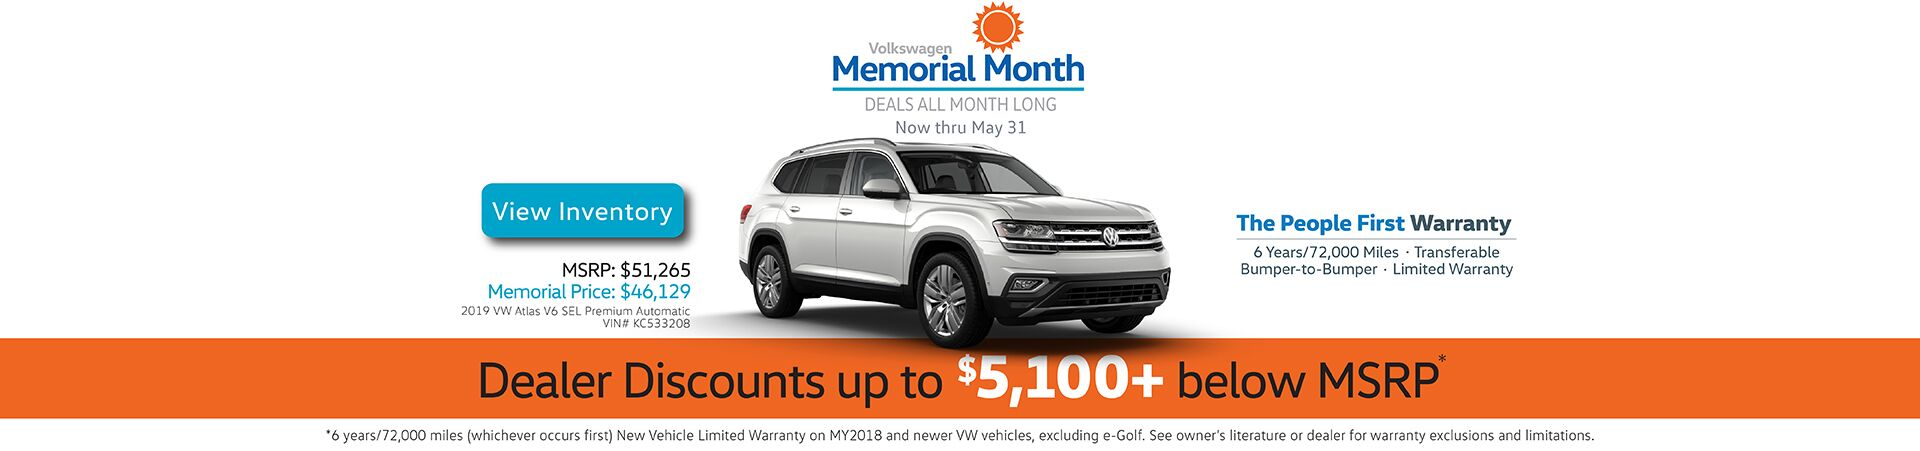 Capo VW Memorial Month - Discounts up to $5,100+ below MSRP now thru May 31st